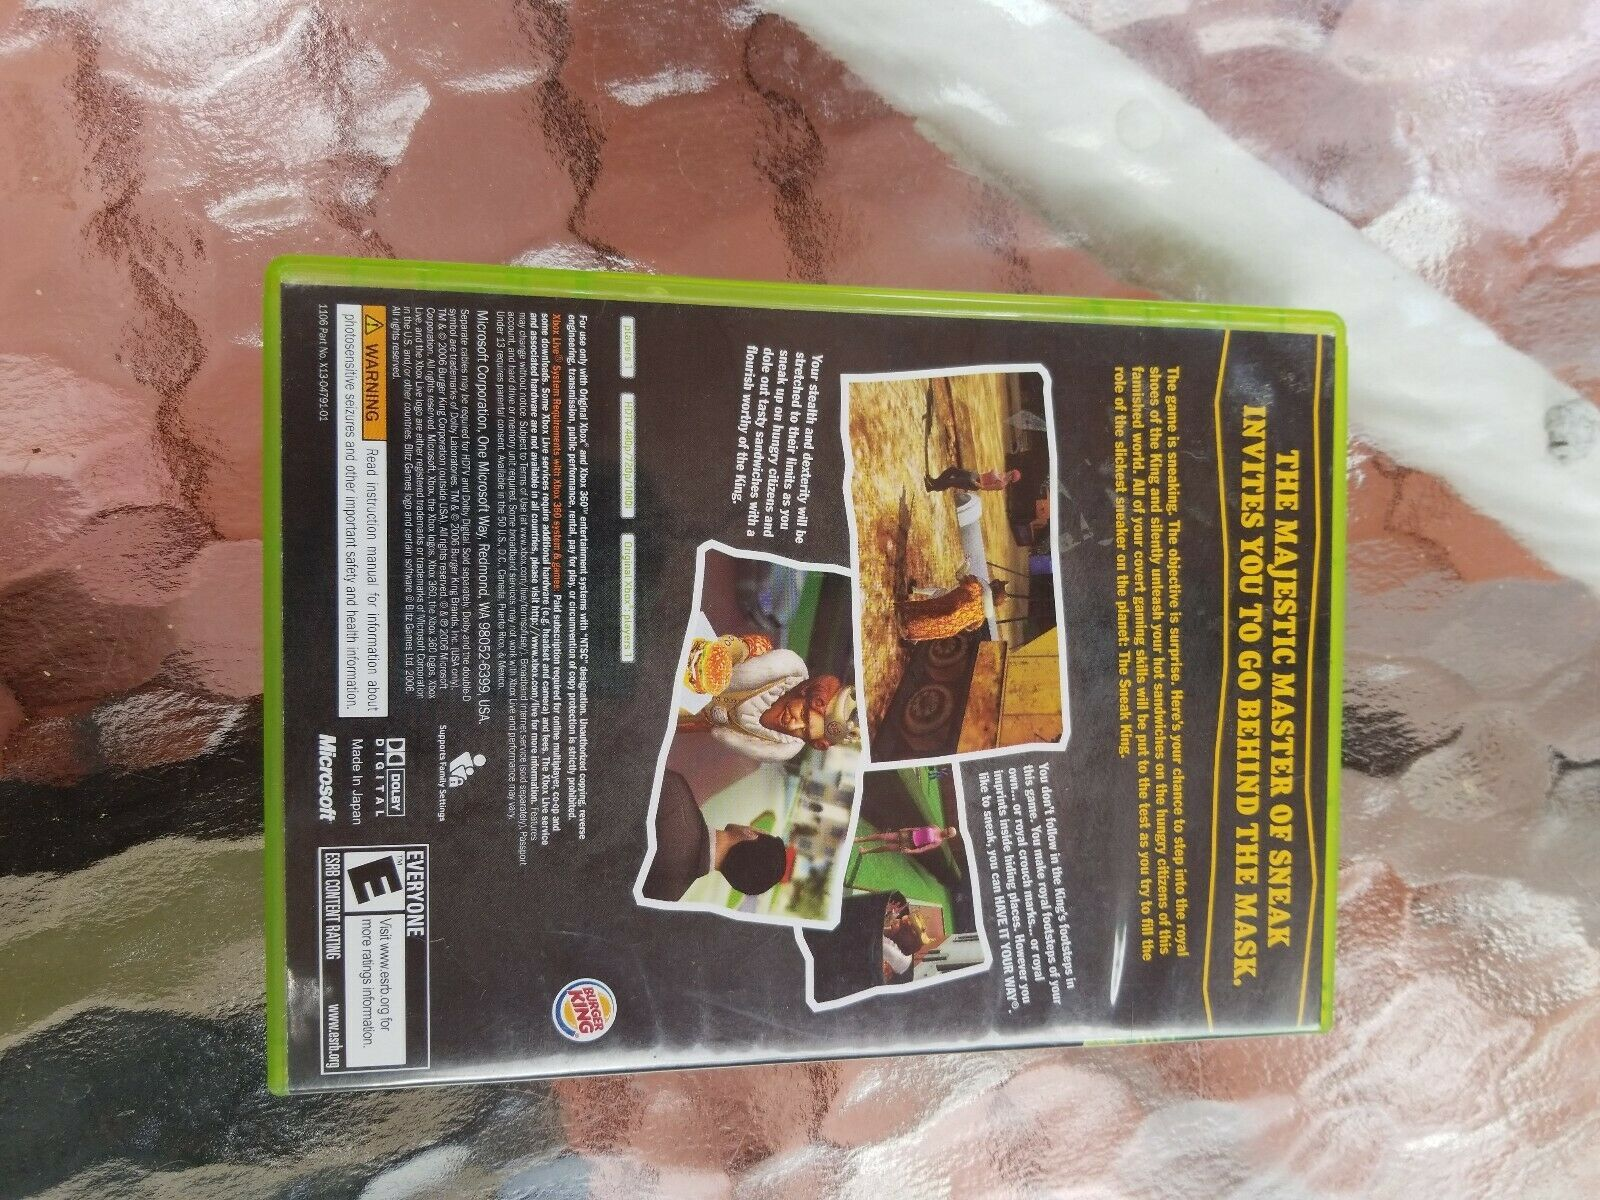 Sneak King (Microsoft Xbox 360, 2006) Burger King Exclusive Game COMPLETE CIB image 2